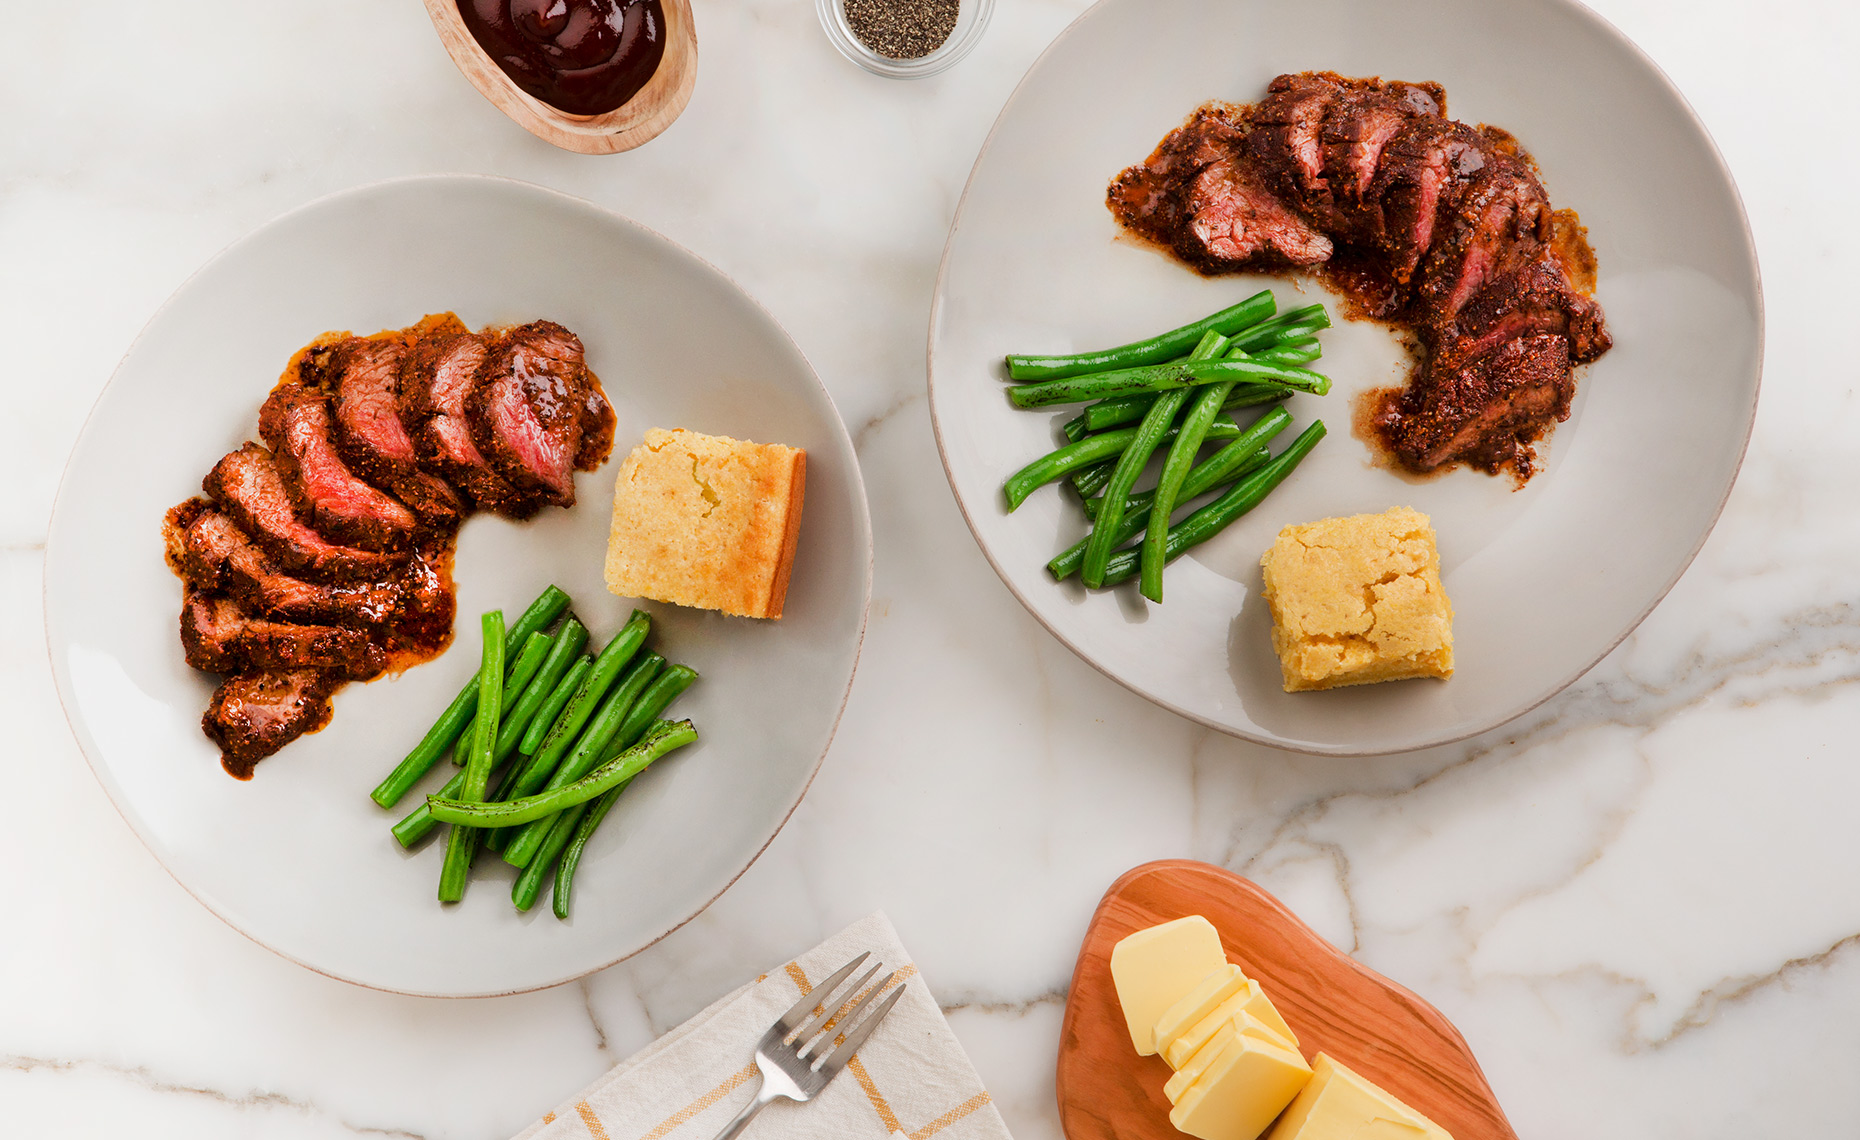 Steak Tenderloin with Green Beans Dinner, Rose Hodges Food Photography San Francisco